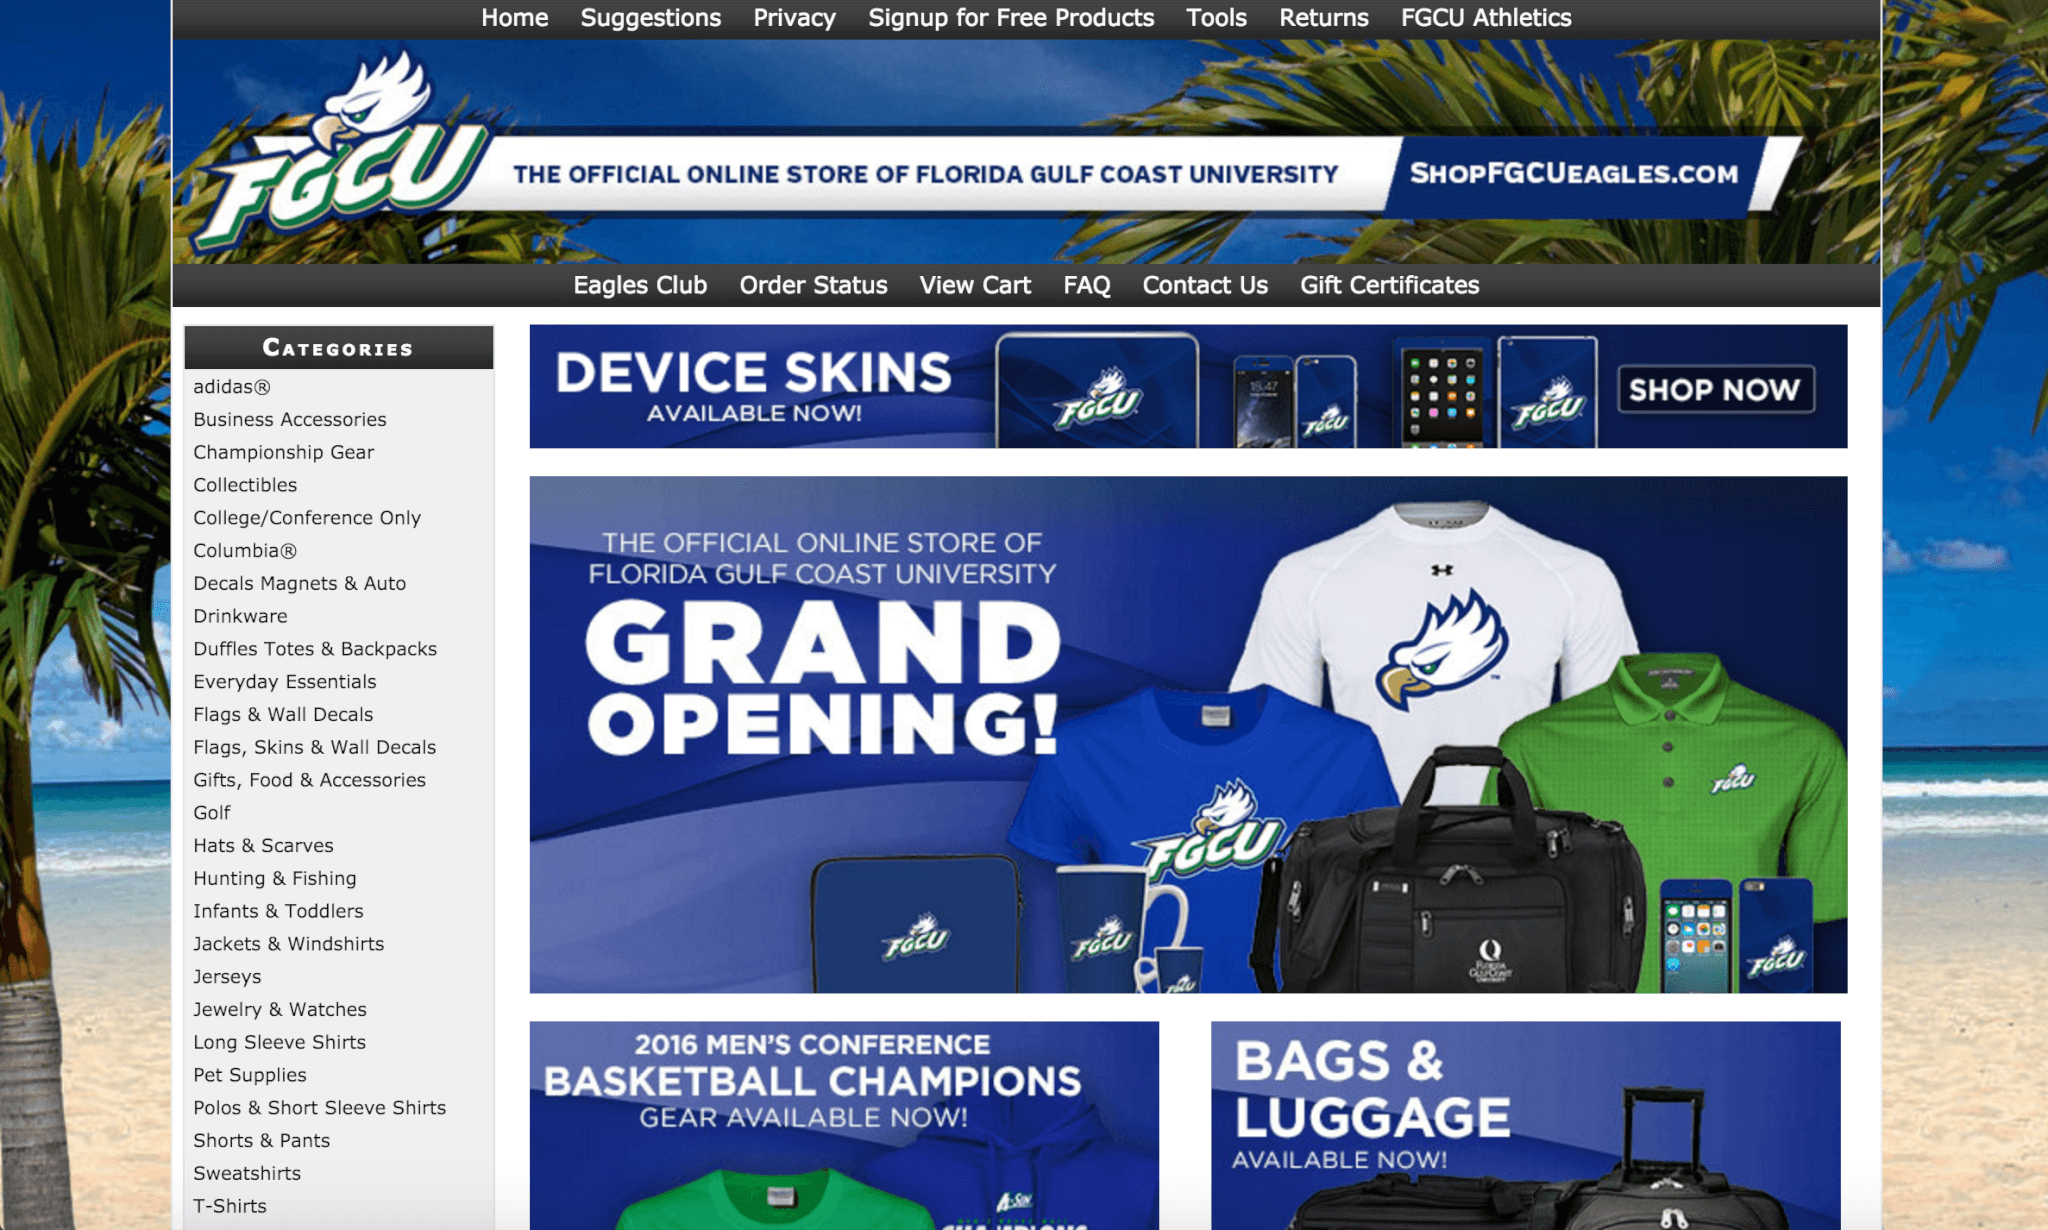 FGCU launches new online store